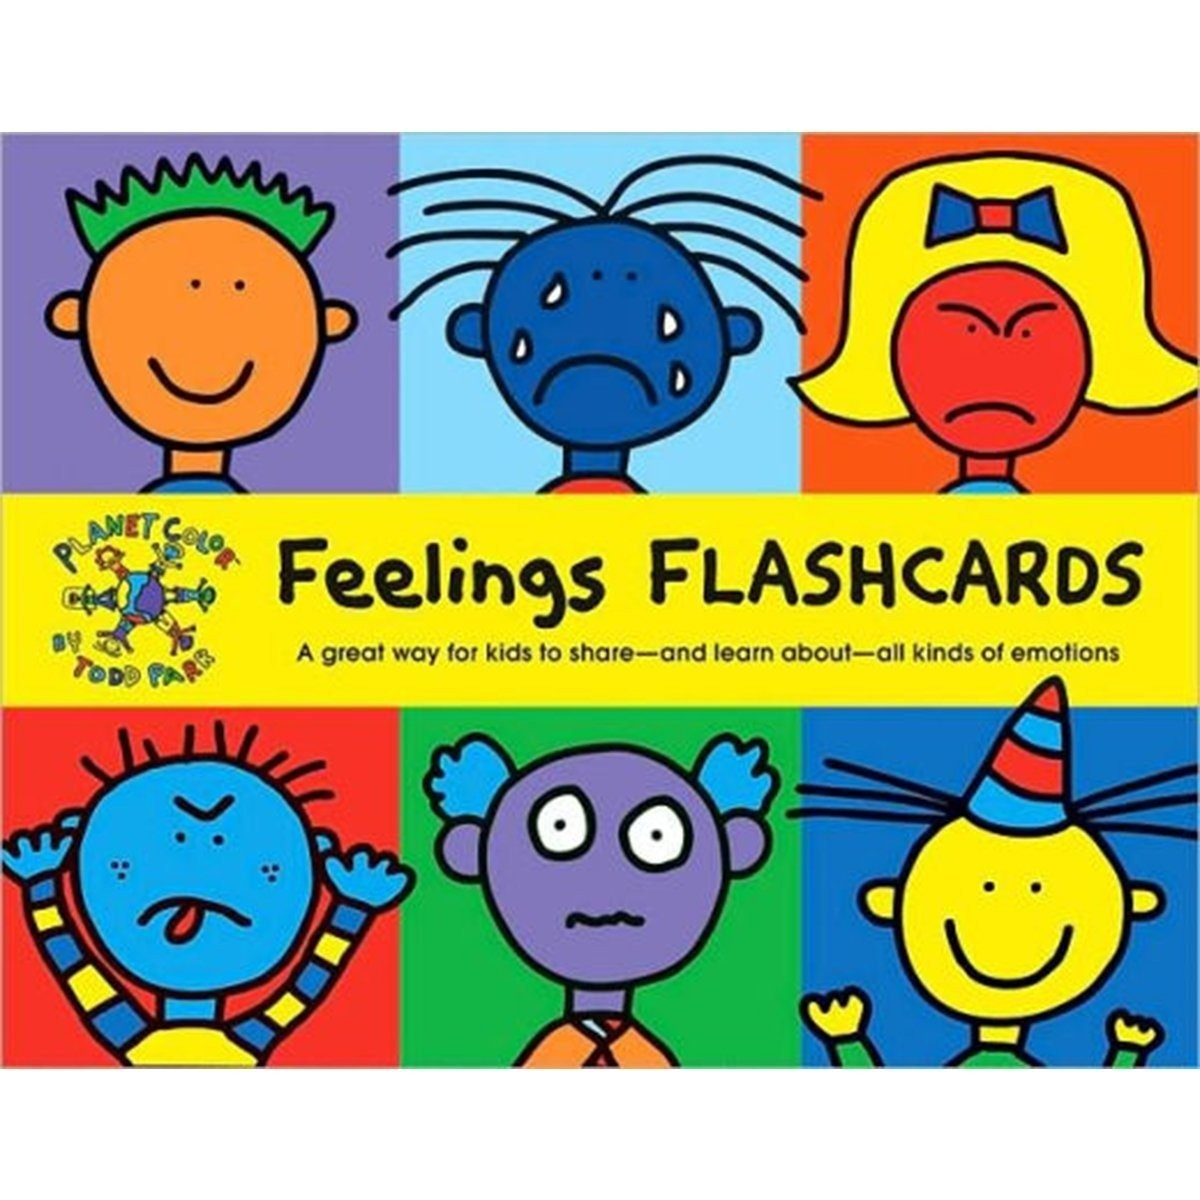 hachette book group Feelings Flash Cards